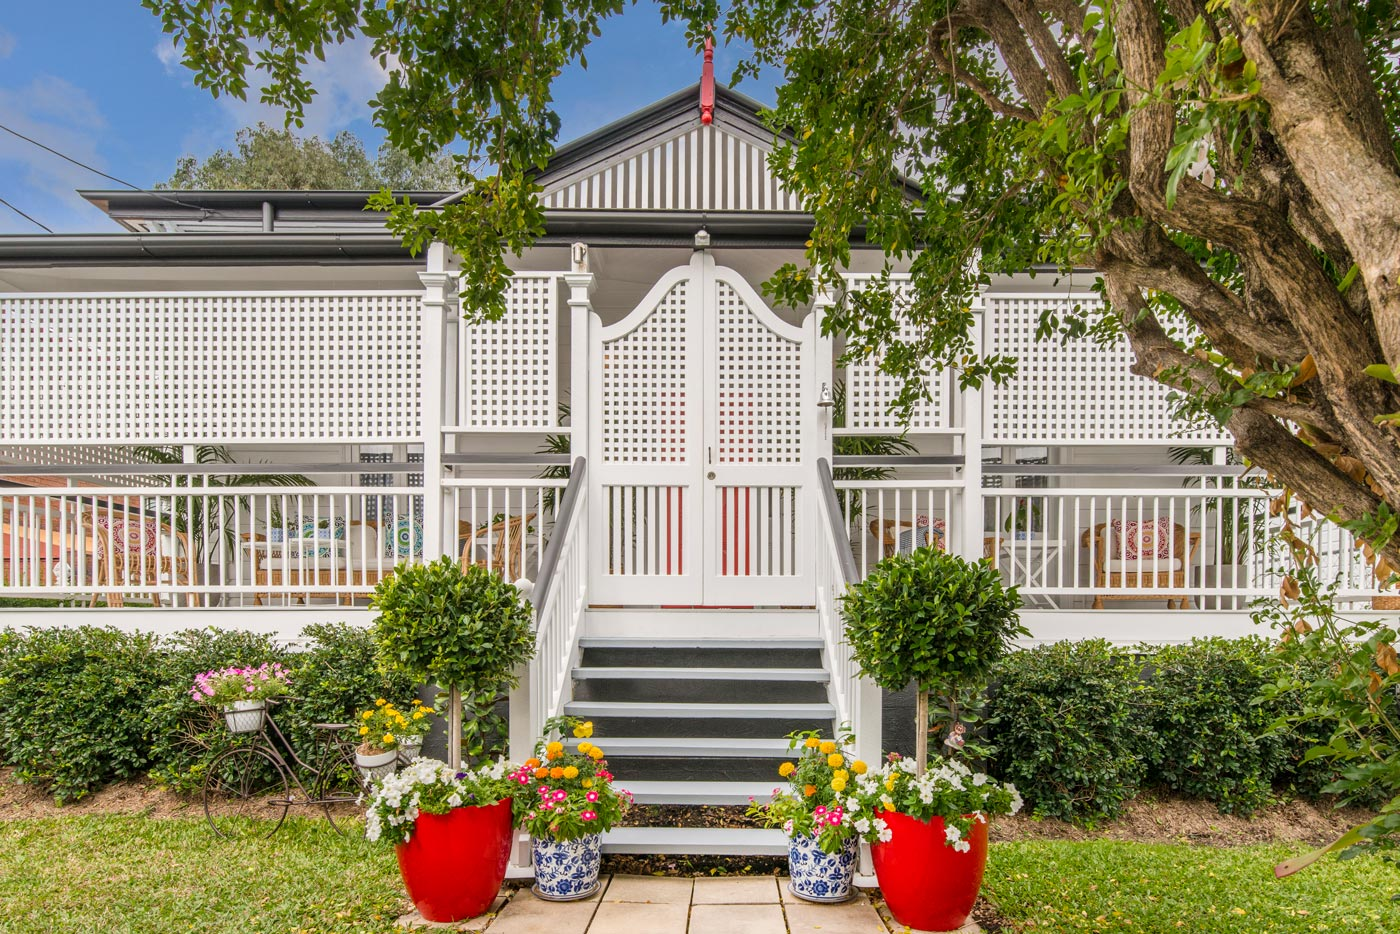 Traditional Queenslander house white fence Airbnb